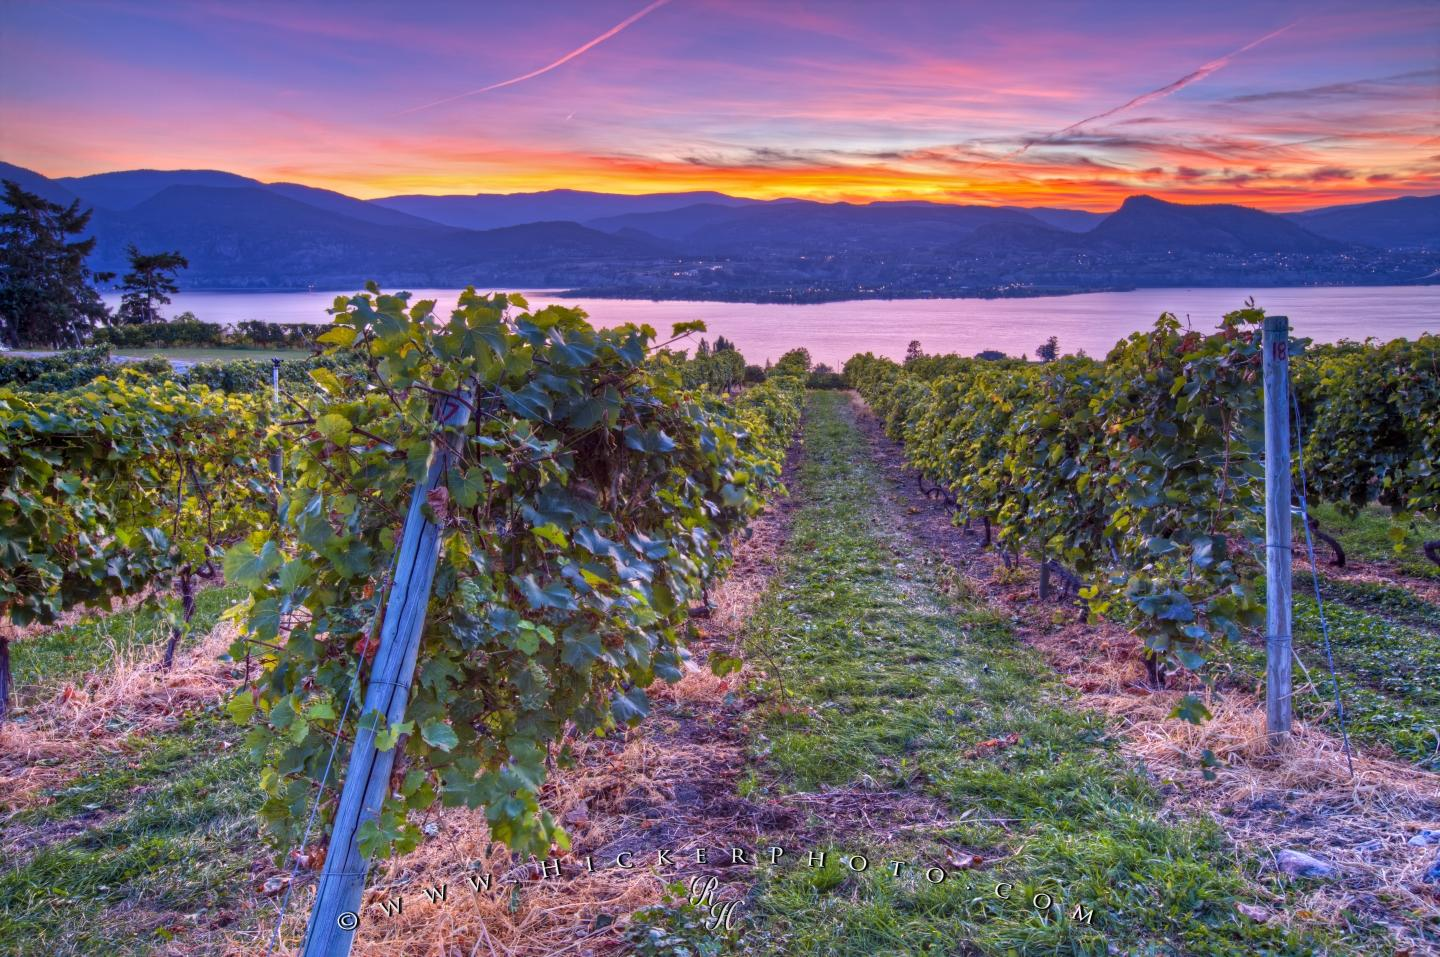 Free wallpaper background: Fall Sunset Vineyard Lake